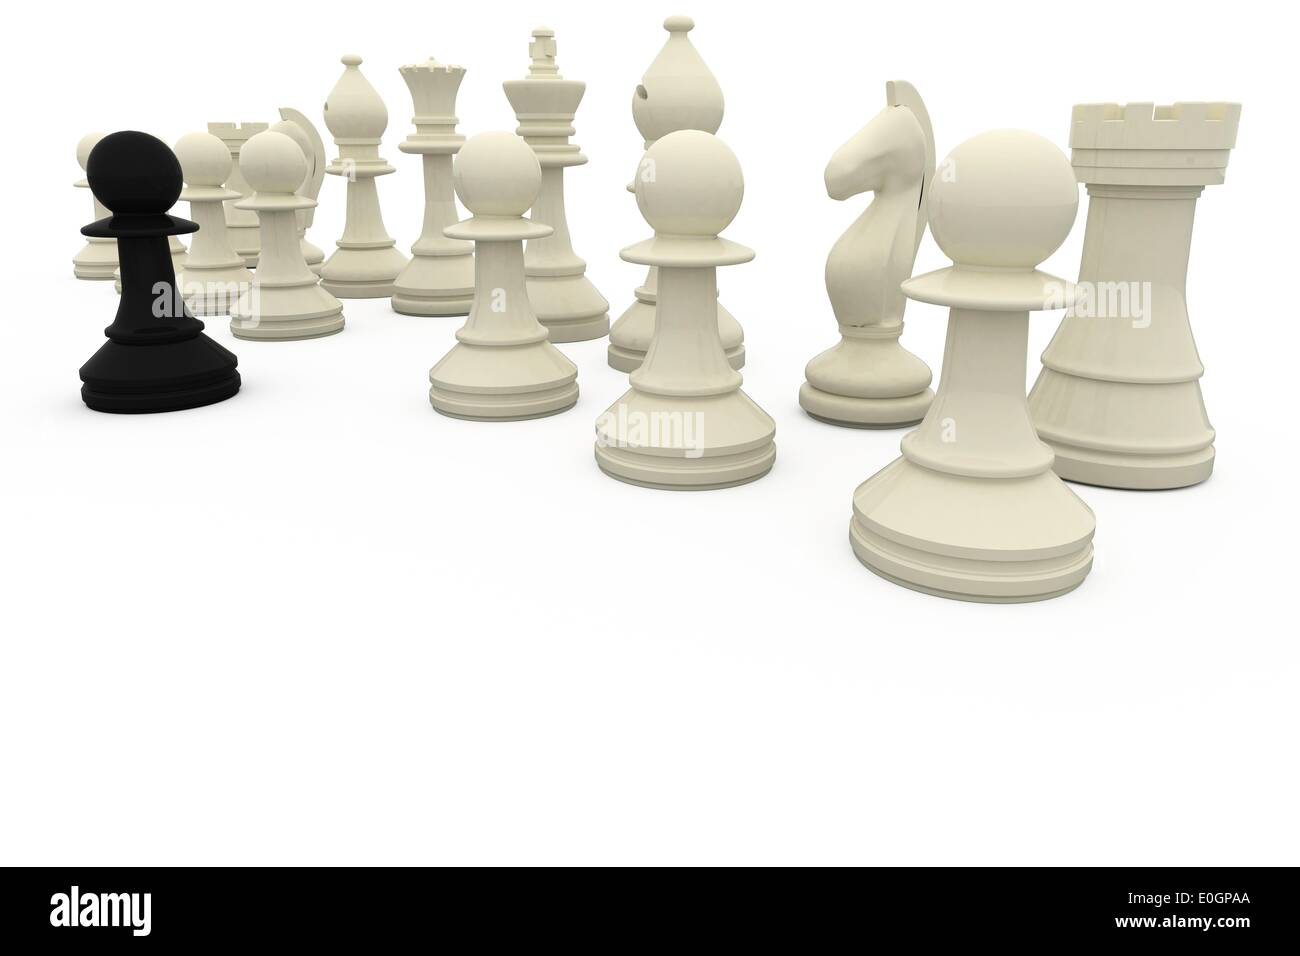 Black pawn facing white opposition - Stock Image